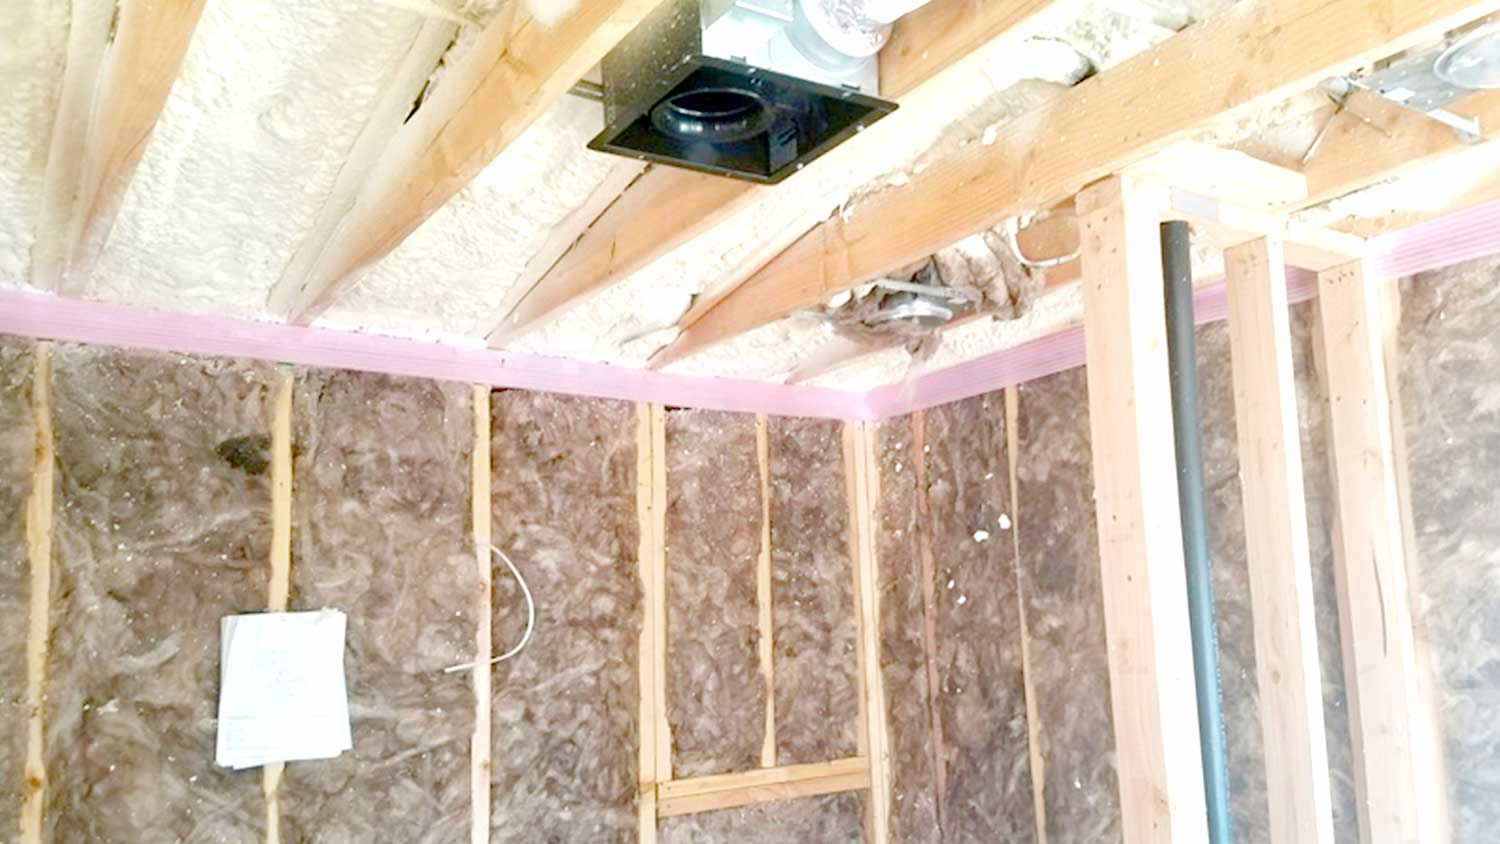 Insulation Solutions - Grass Valley - Sacramento - Spray Foam Insulation 1